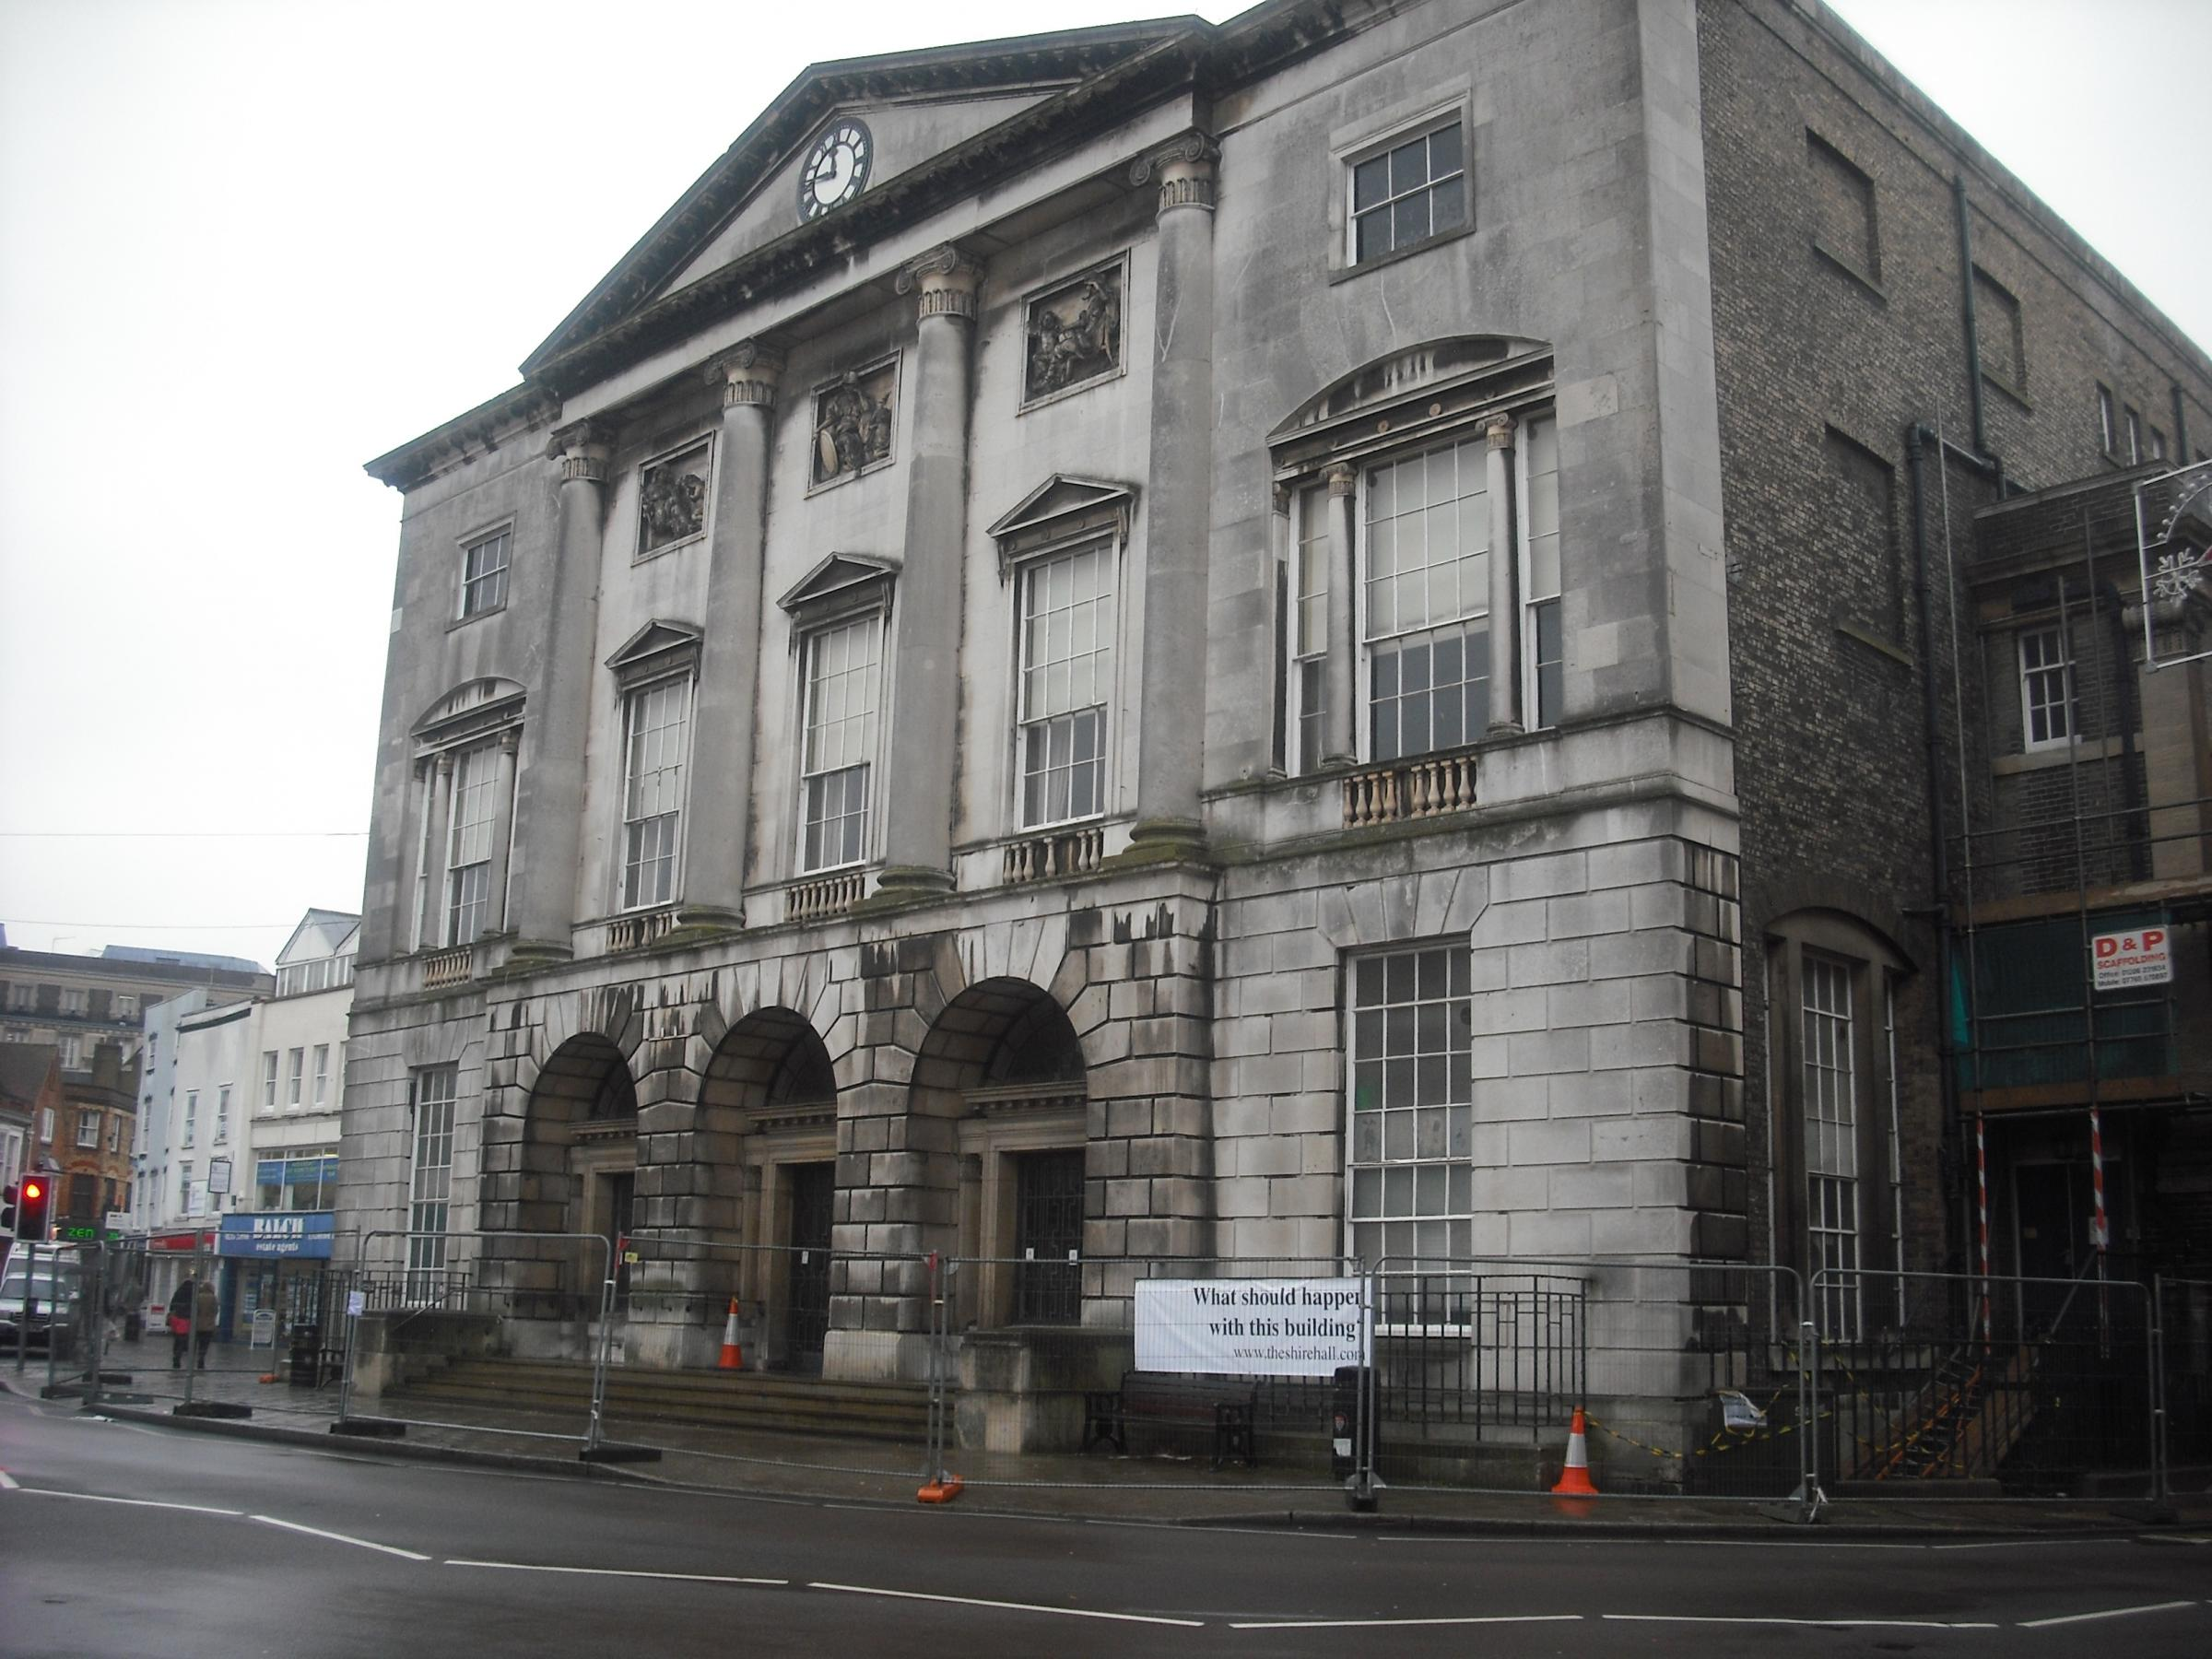 Shire Hall - before repairs